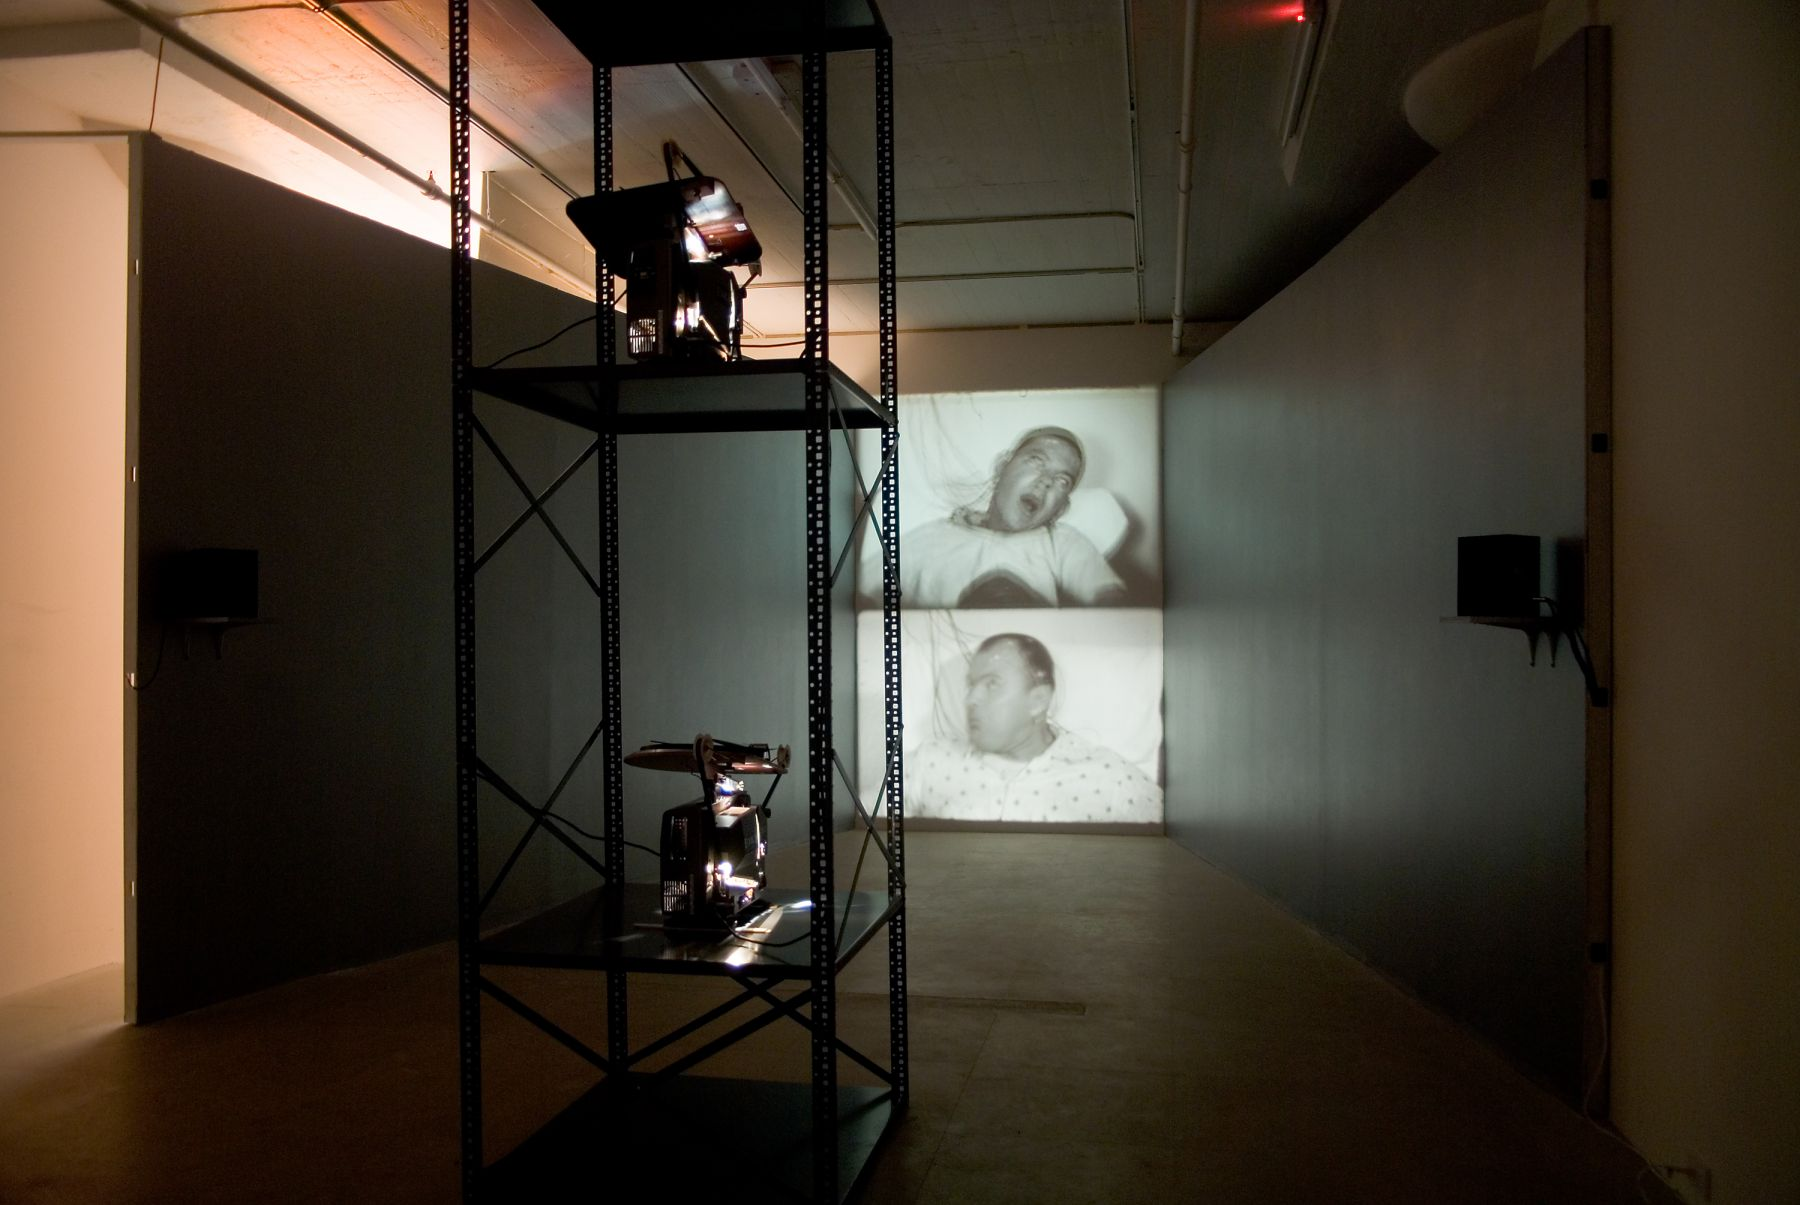 Installation view, Epileptic Seizure Comparison, Greene Naftali, New York, 2007